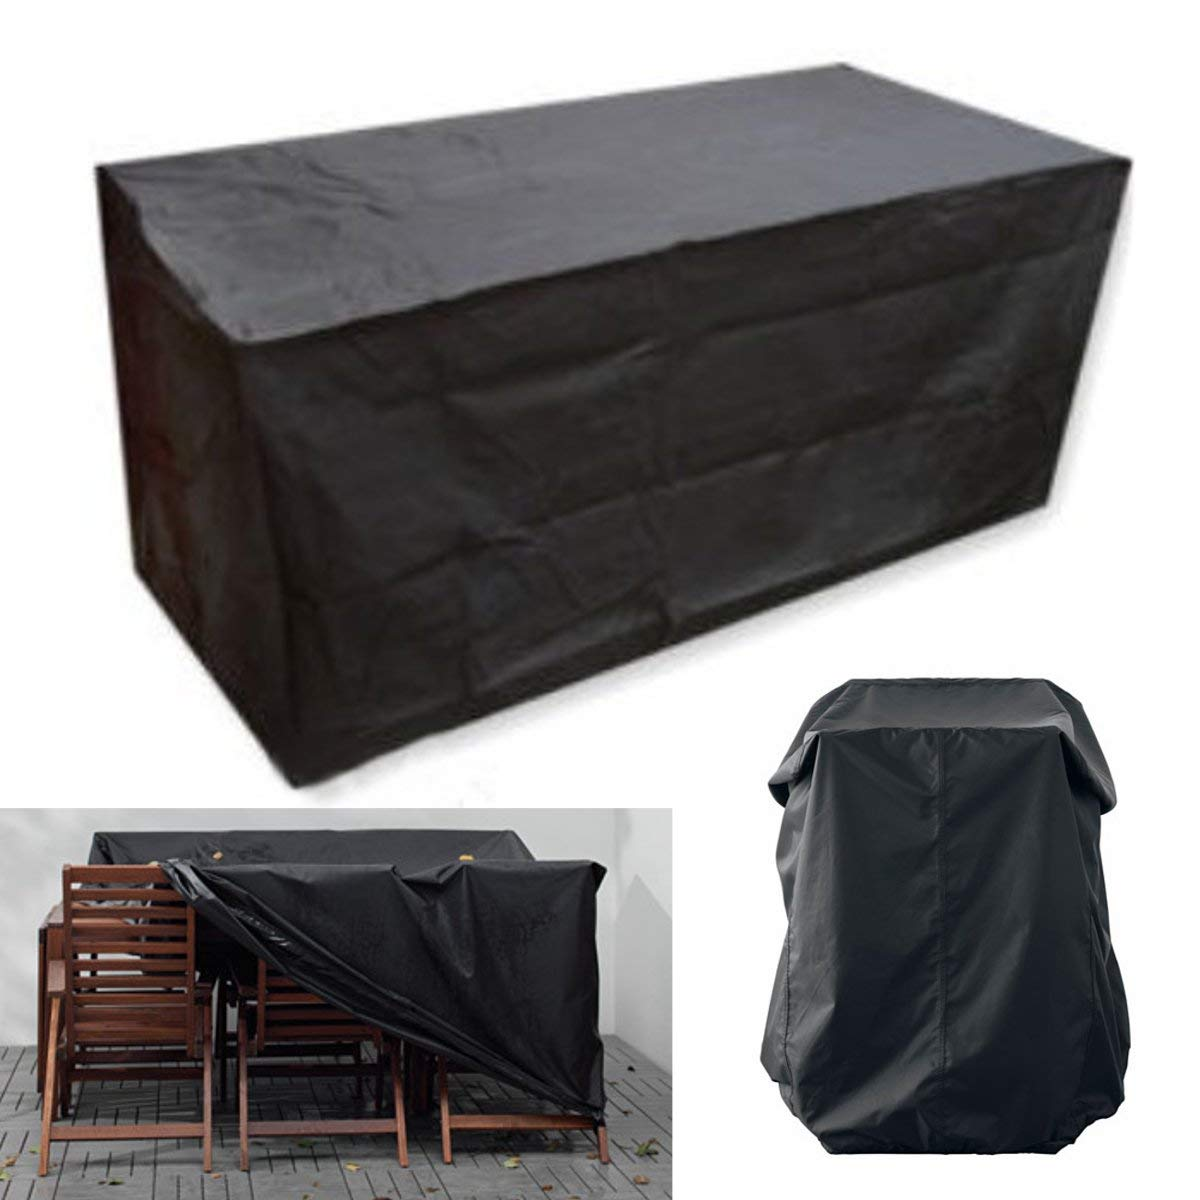 170X97X71cm Black Patio Furniture Set Covers Waterproof Outdoor Furniture Protector Waterproof Dust Proof Protective Covers